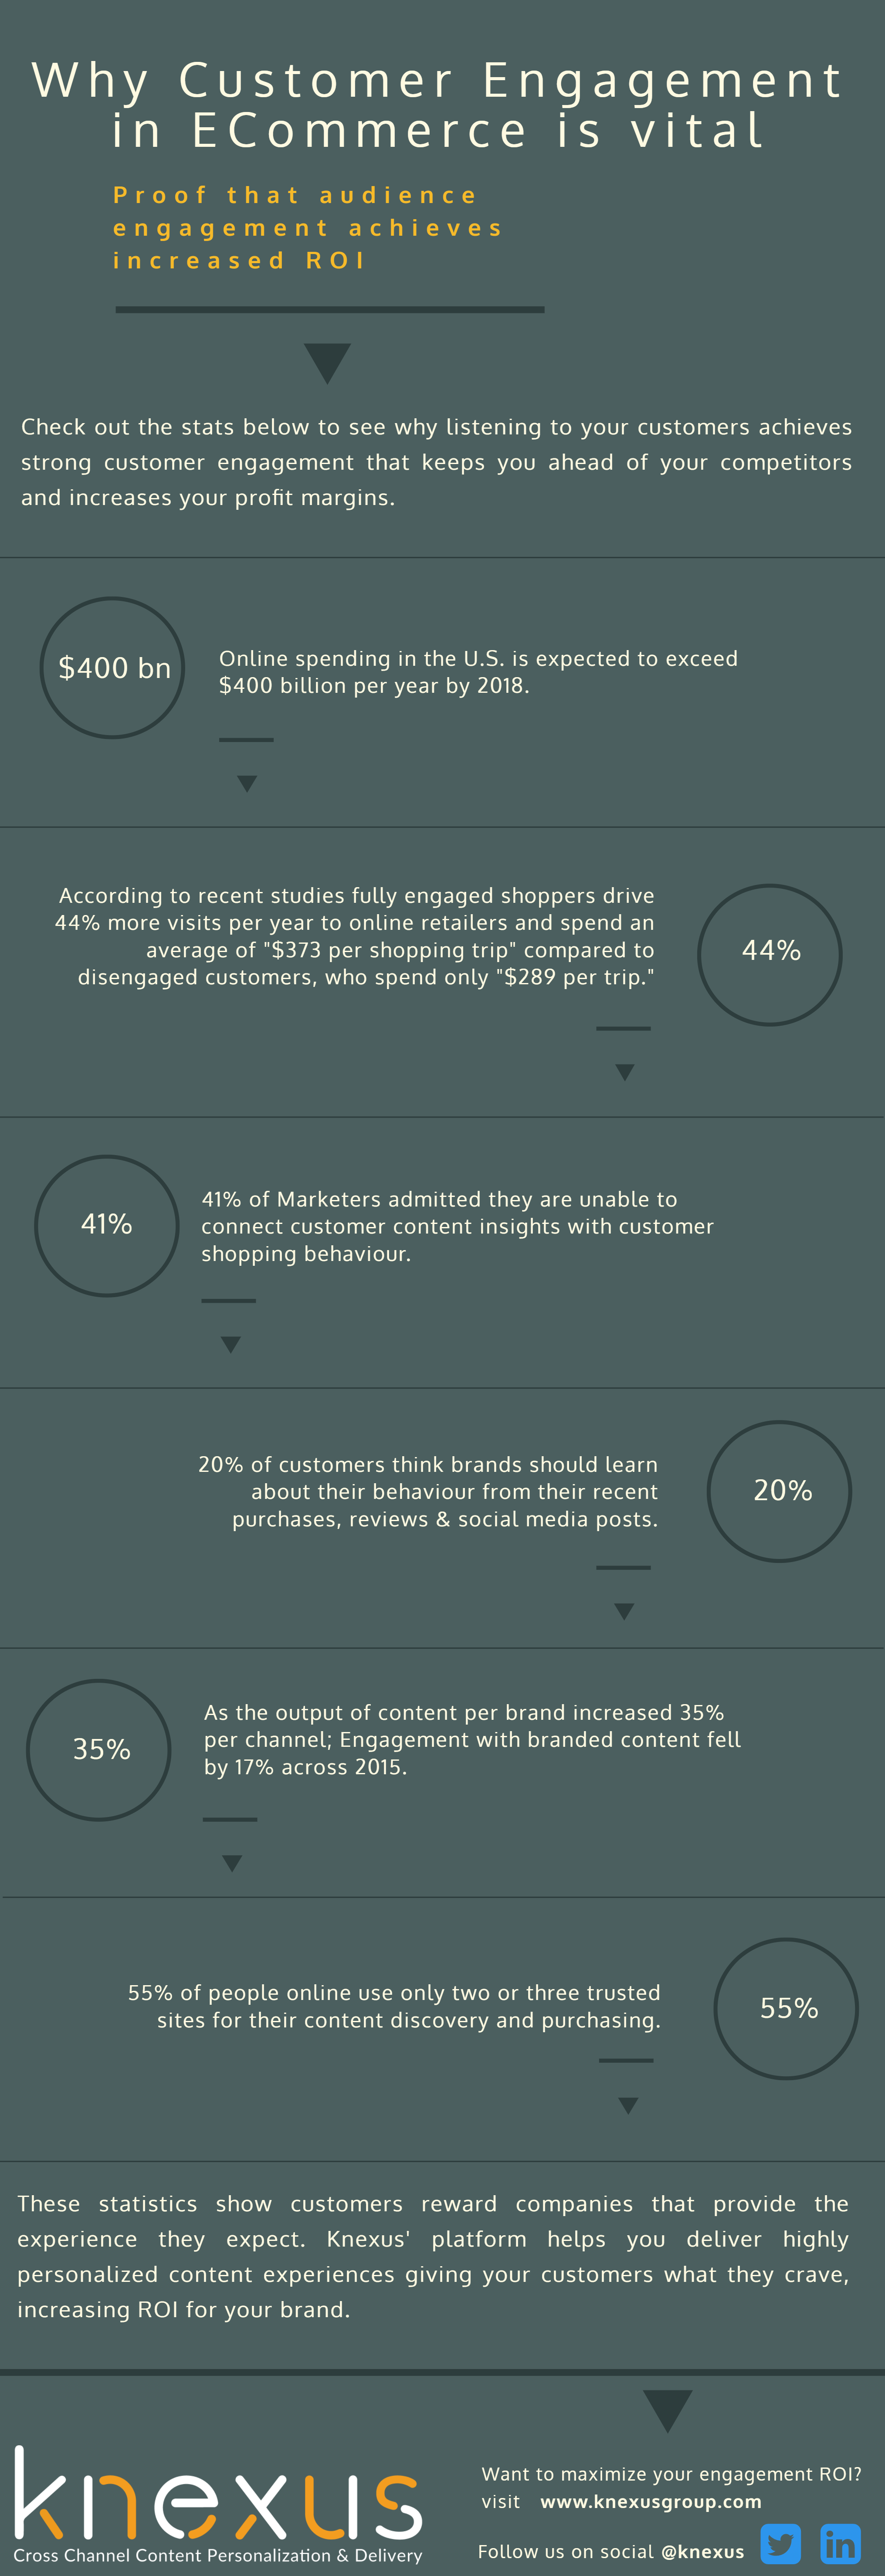 Why customer engagement in ecommerce is vital infographic